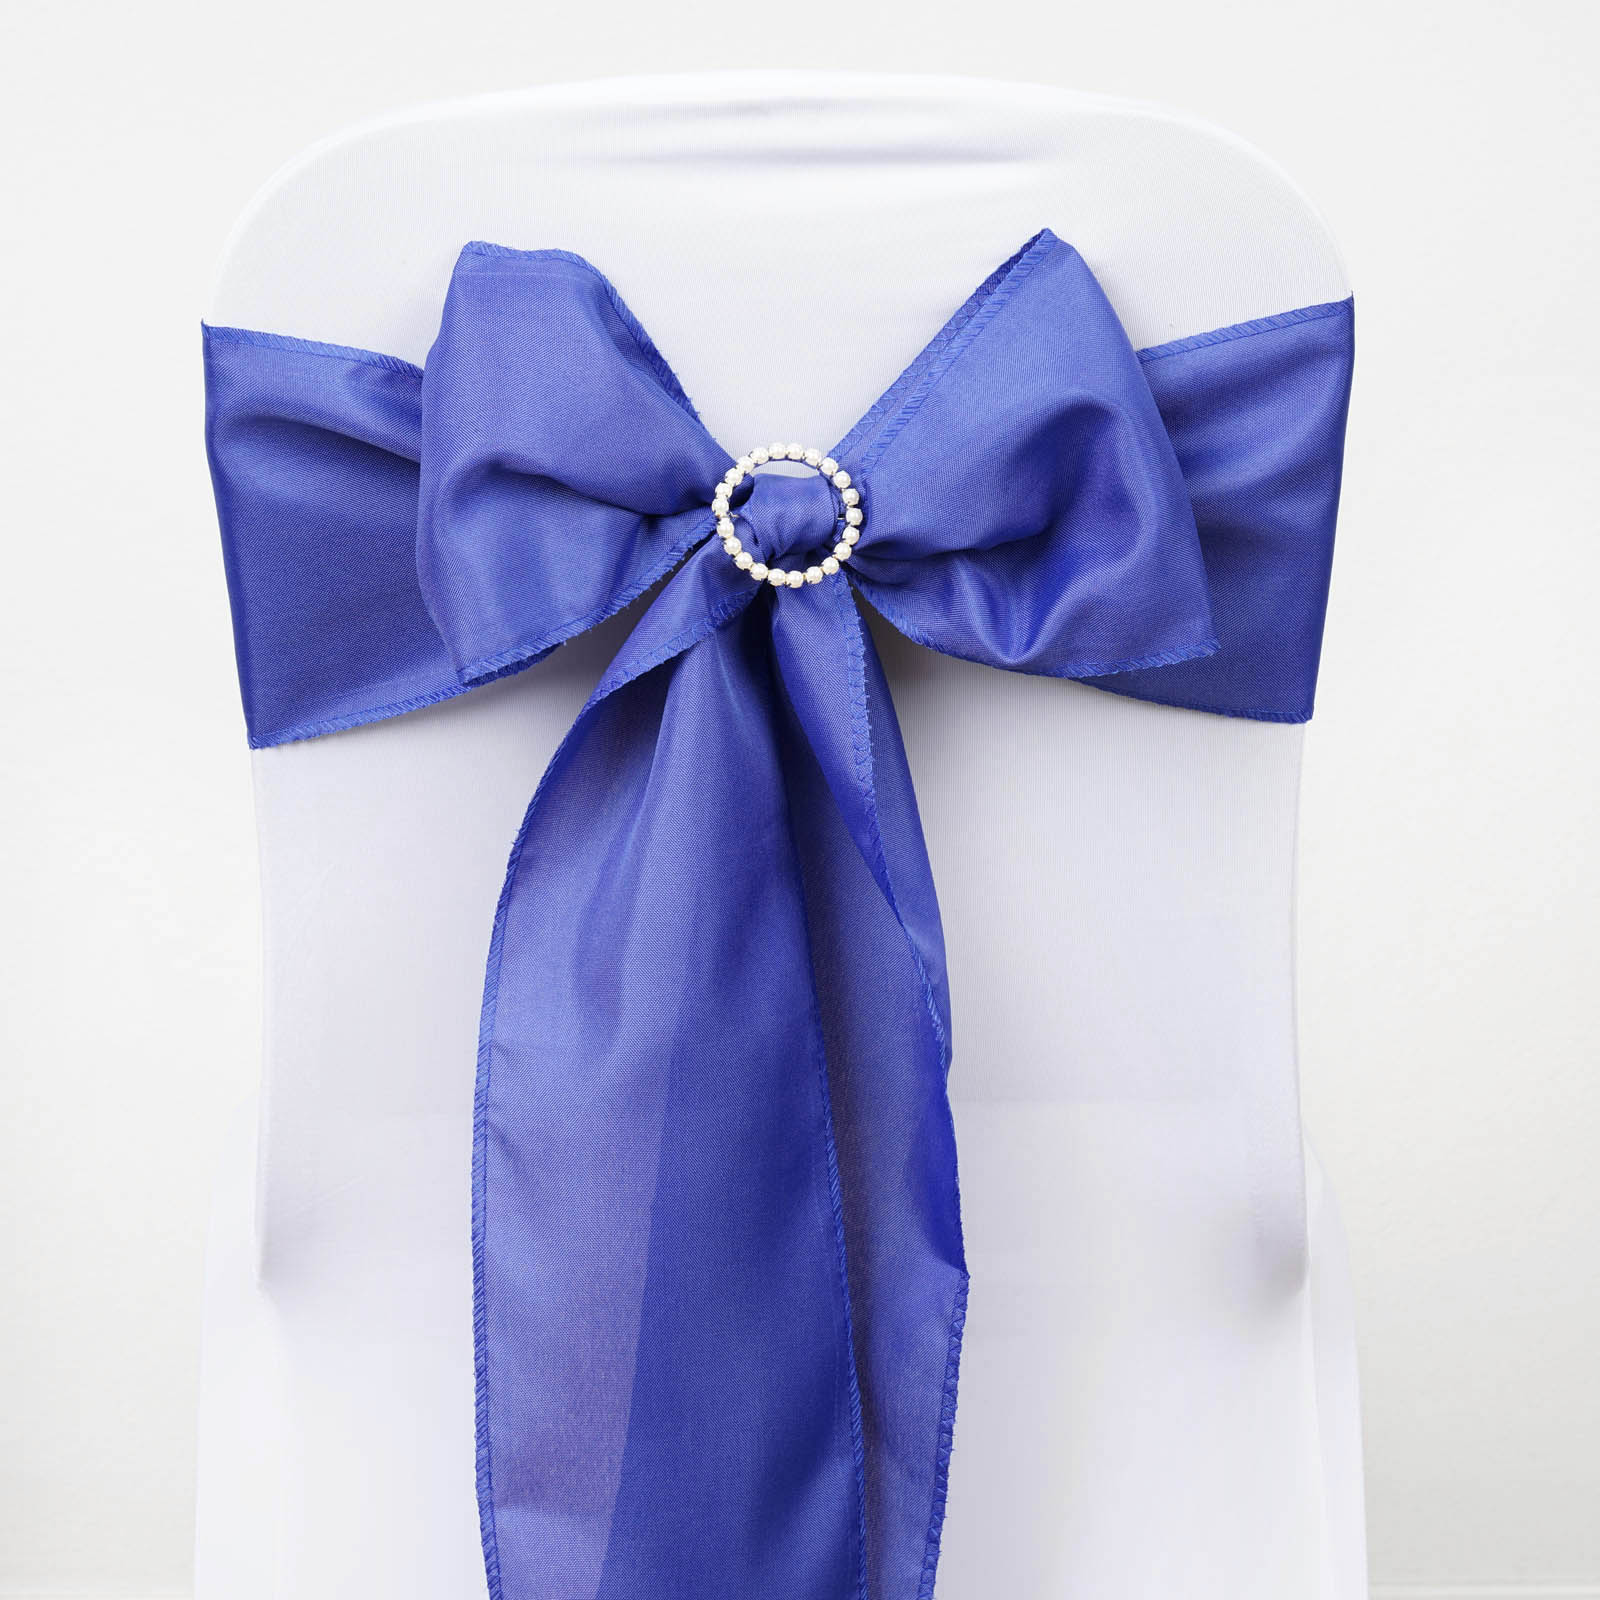 100 Polyester CHAIR SASHES Ties Bows Wedding Party Reception Decorations SALE